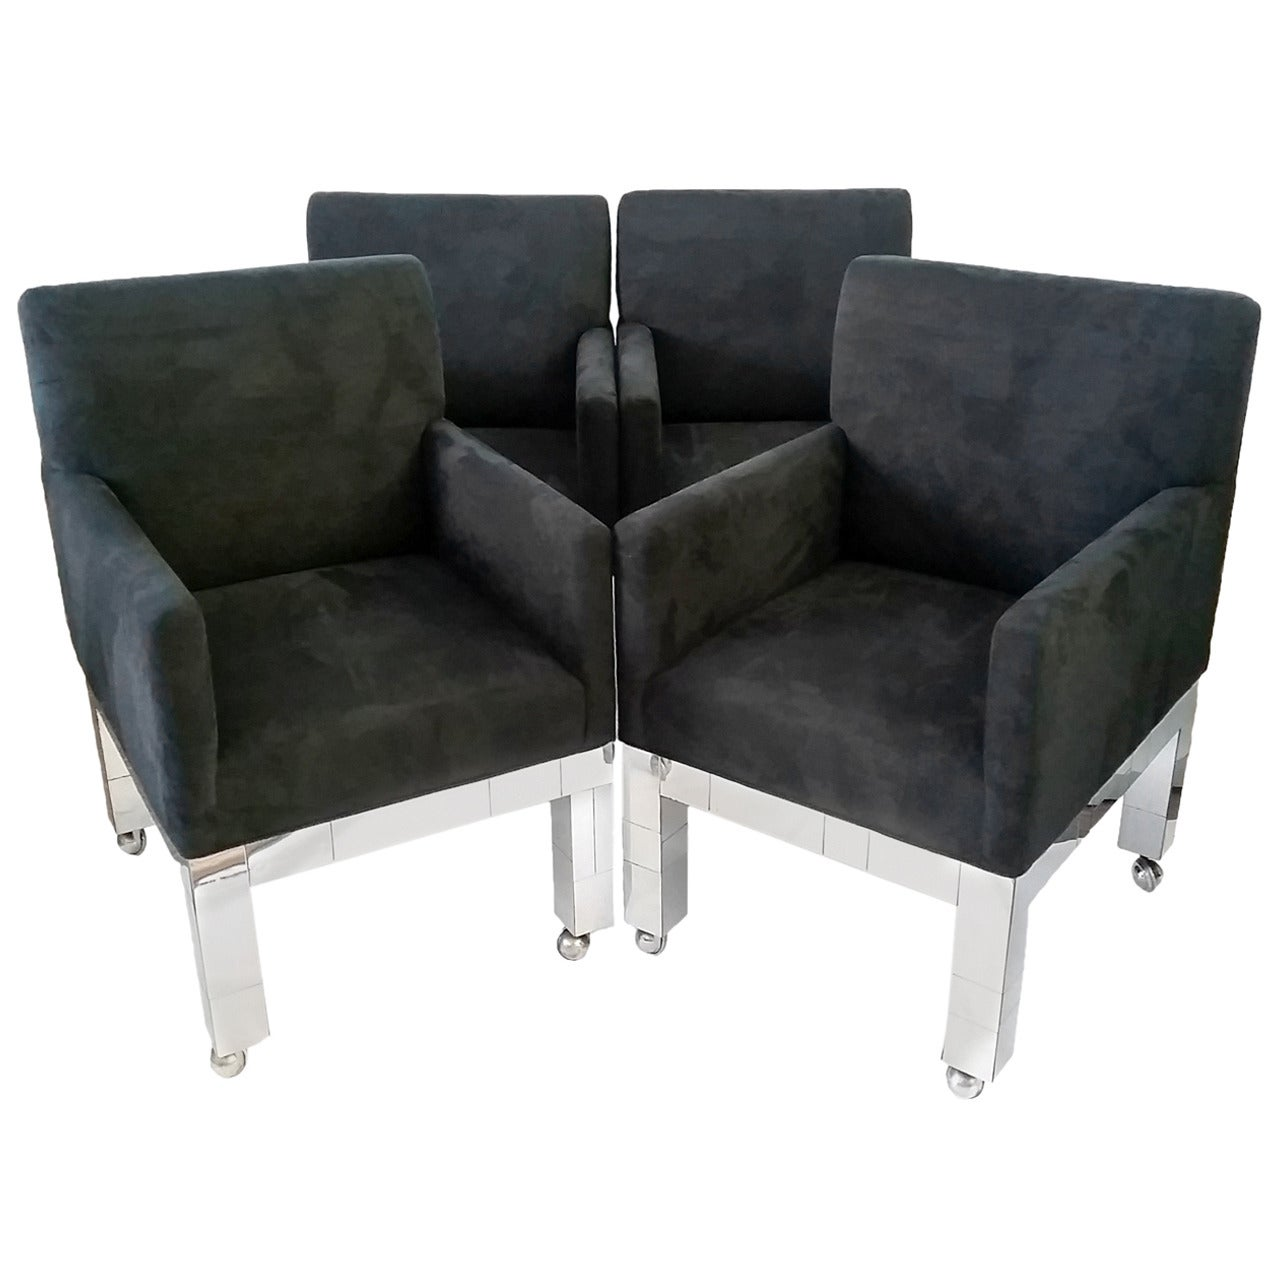 Set of Four Chrome Cityscape Chairs by Paul Evans for Directional